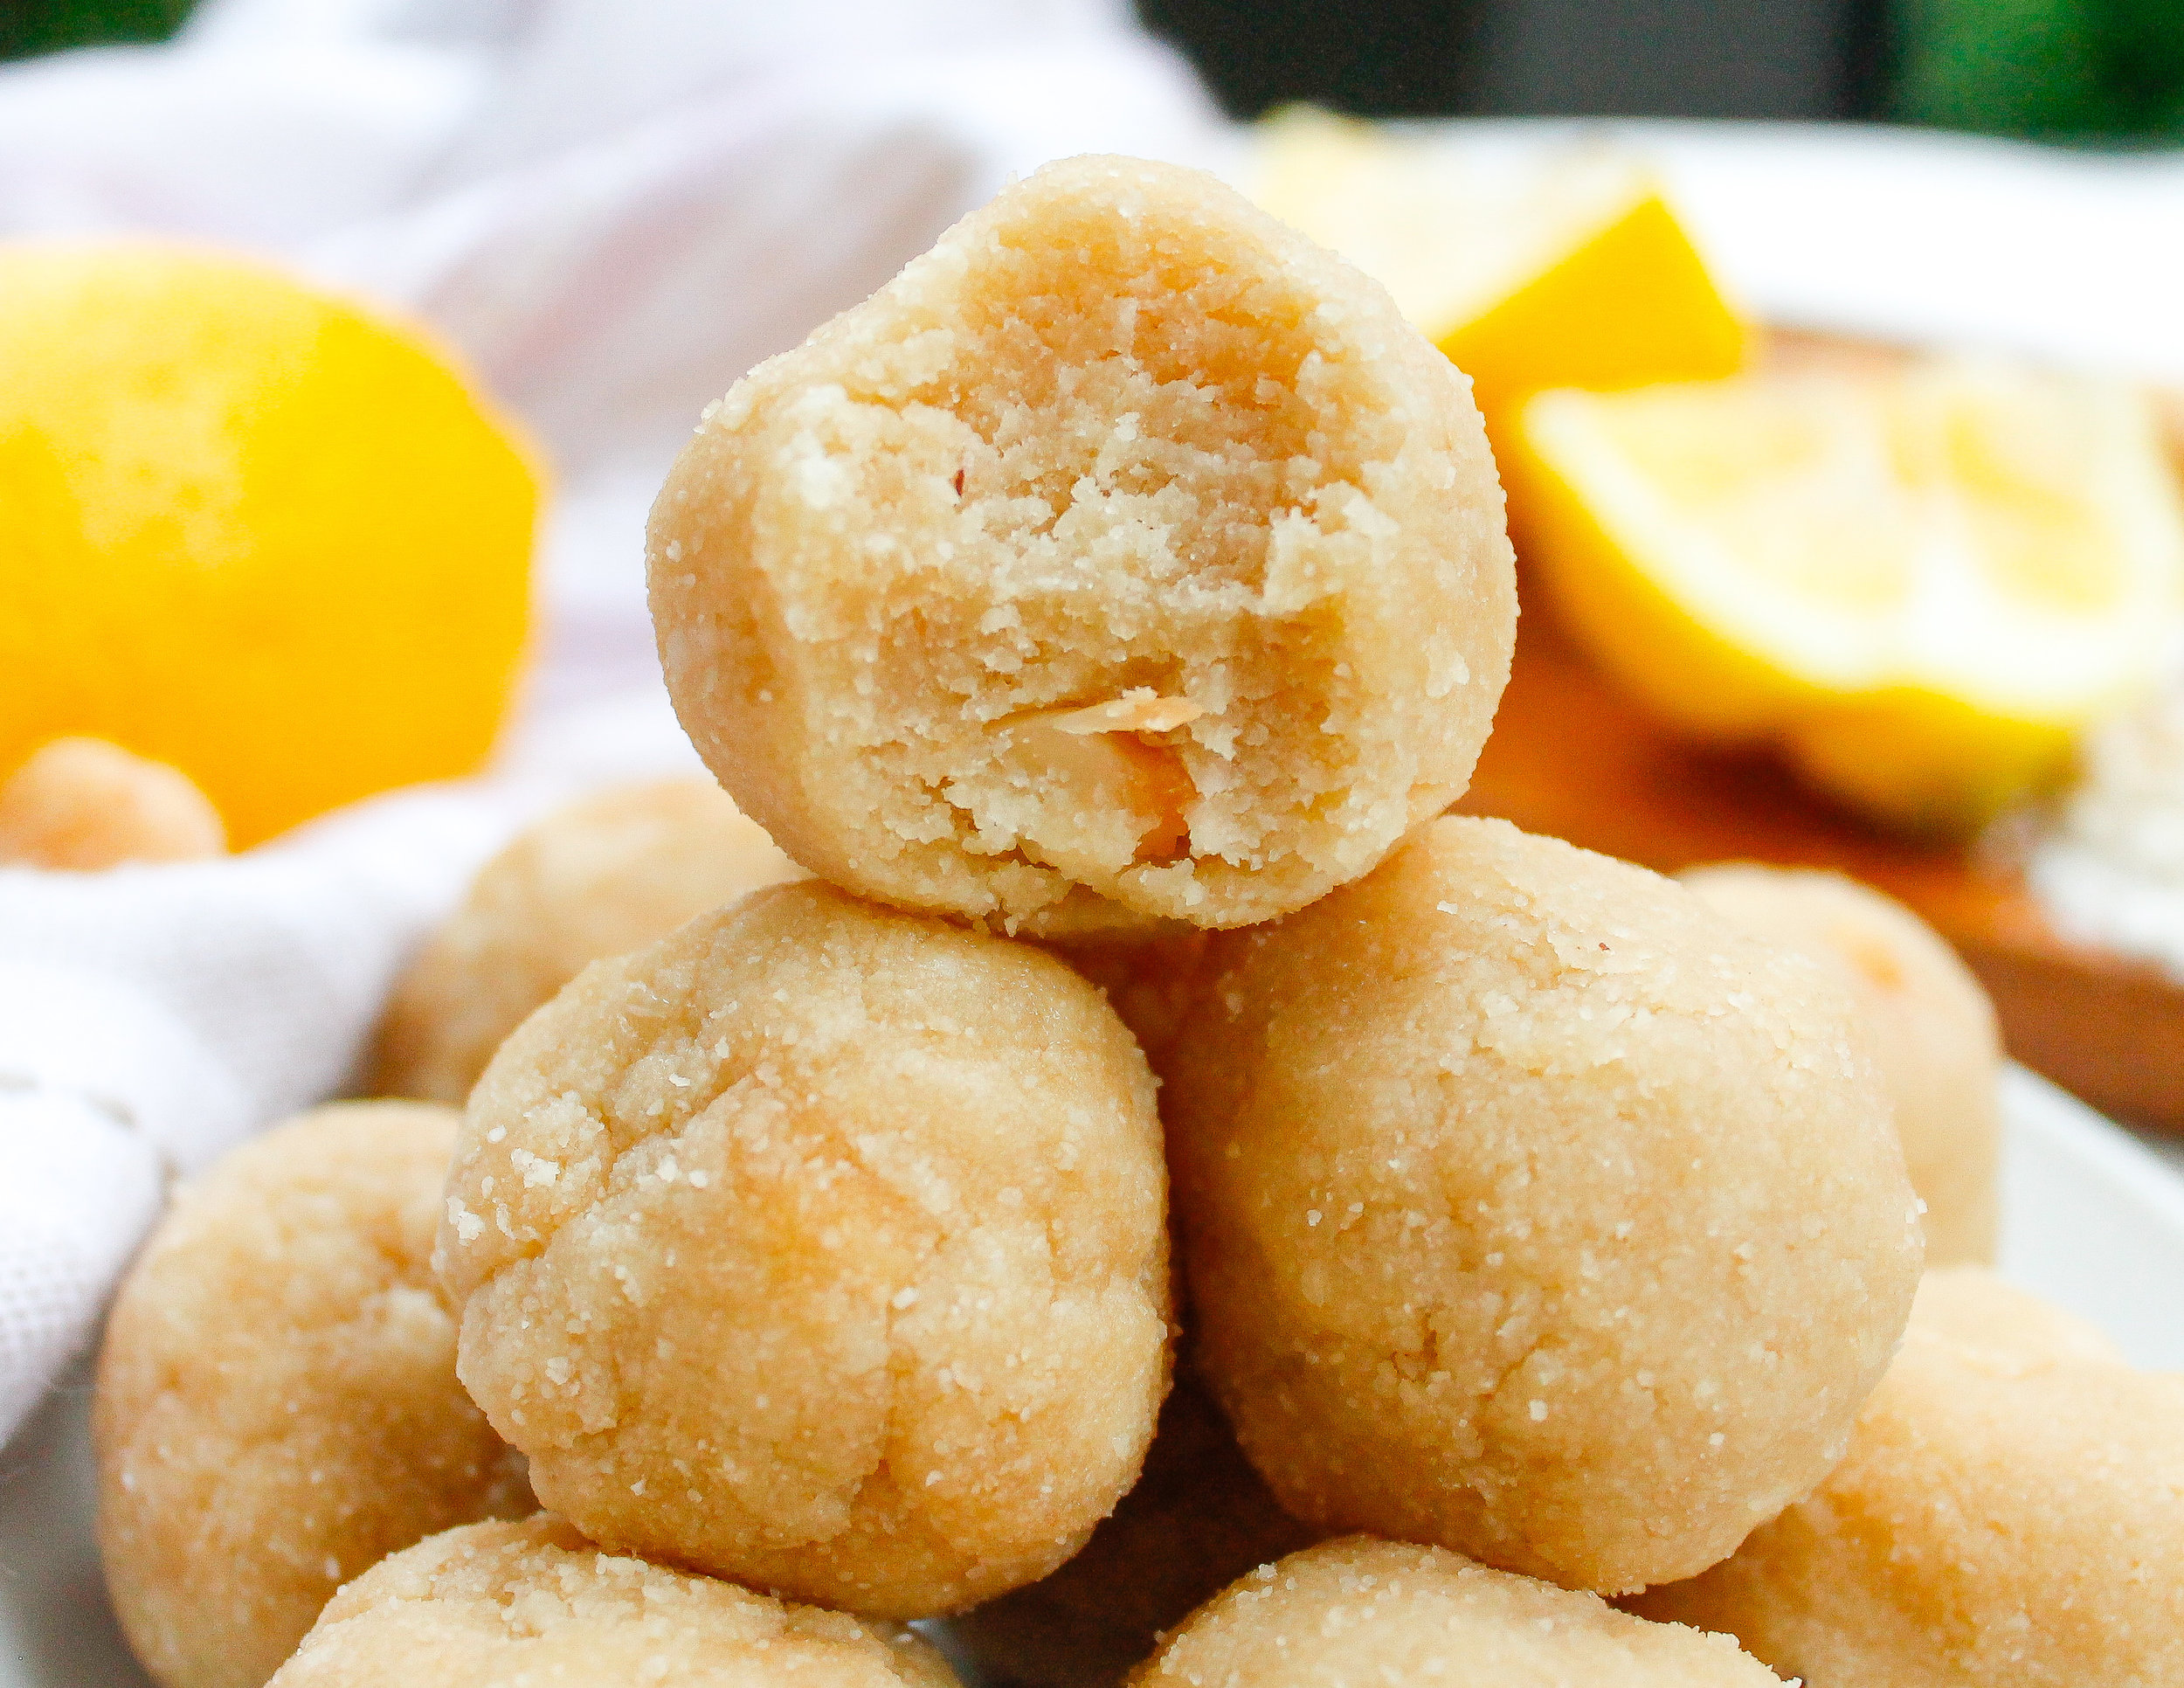 Paleo Lemon Cookie Dough Bites || These paleo cookie dough balls are decadent yet oh-so-healthy! They're grain free, gluten free, dairy free, refined sugar free AND Specific Carbohydrate Diet friendly! They're rich, yet refreshing with the delicious lemon flavor and bites of crunchy macadamia nuts. The perfect healthy summer snack or healthy summer sweet treat! || #scddiet #specificcarbohydratediet #paleocookiedough